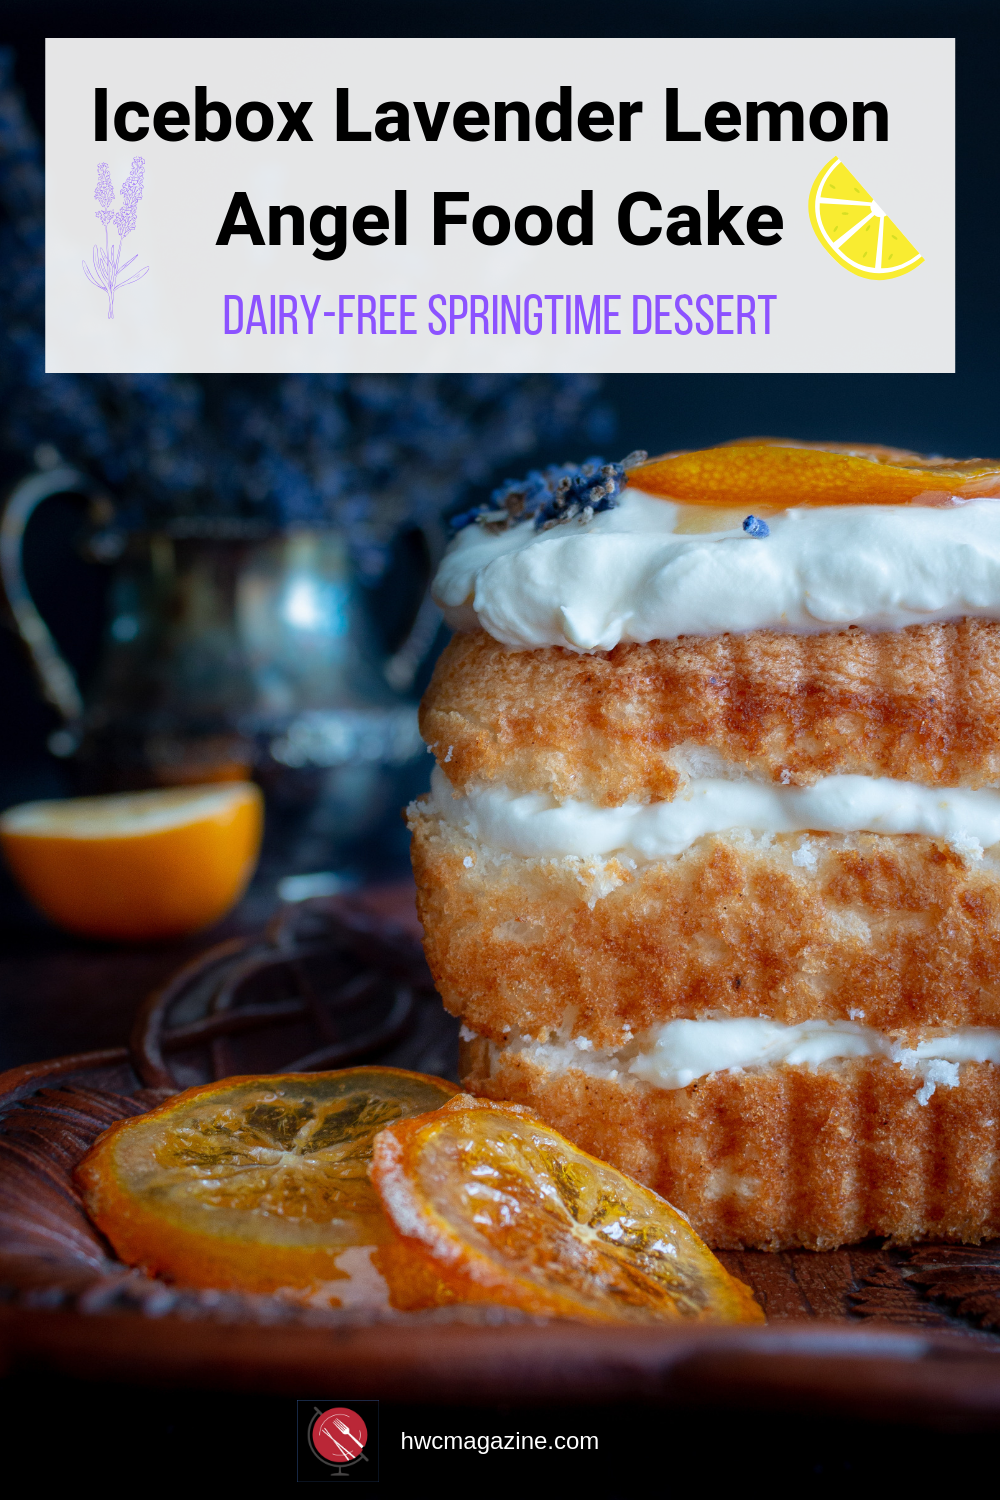 Icebox Lavender Lemon Angel Food Cake is light and fluffy with a delicious lavender Meyer lemon honey dairy free topping between 3 layers of angel food cake. Almost homemade and a show stopper spring dessert. #dessert #lavender #honey #cake #easter #springtime #sweets #dairyfree #easyrecipe #lemon / https://www.hwcmagazine.com